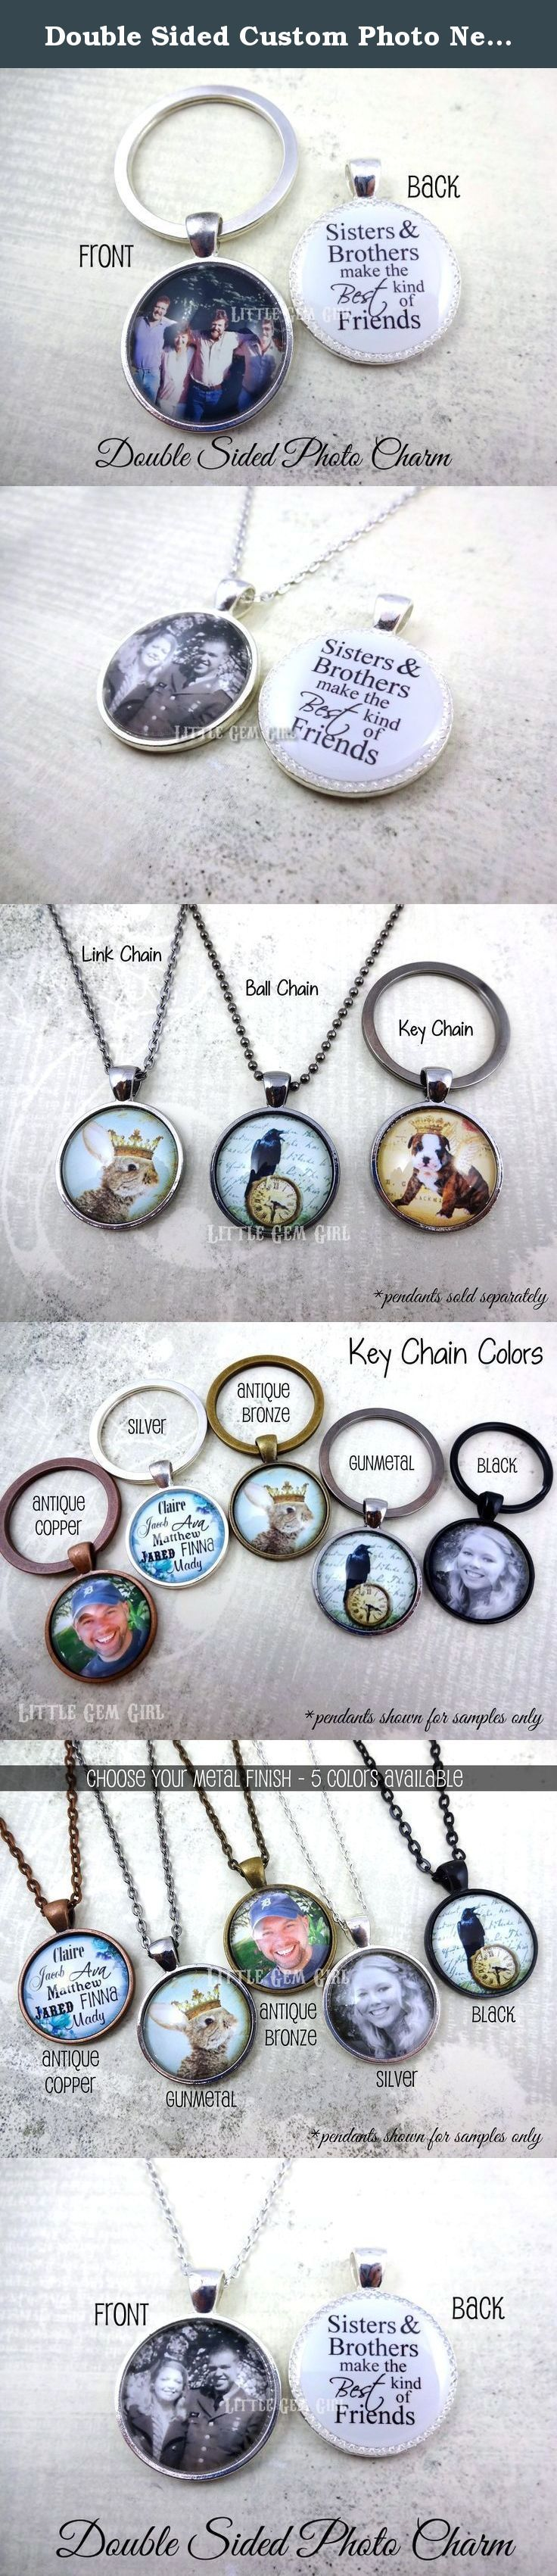 """Double Sided Custom Photo Necklace or Key Chain - Personalized Photo on Front & Text on Back - Sisters and Brothers make the best kind of Friends - Wedding Thank You Gift. ***Please email your photo to littlegemgirl@hotmail.com - see below for further instructions.*** Double Sided Custom Photo Charm with Photo on the front and text on the back which reads """"Sisters and Brothers make the best kind of Friends"""" Choose the setting color - Silver, Antique Bronze, Antique Copper, Black or…"""